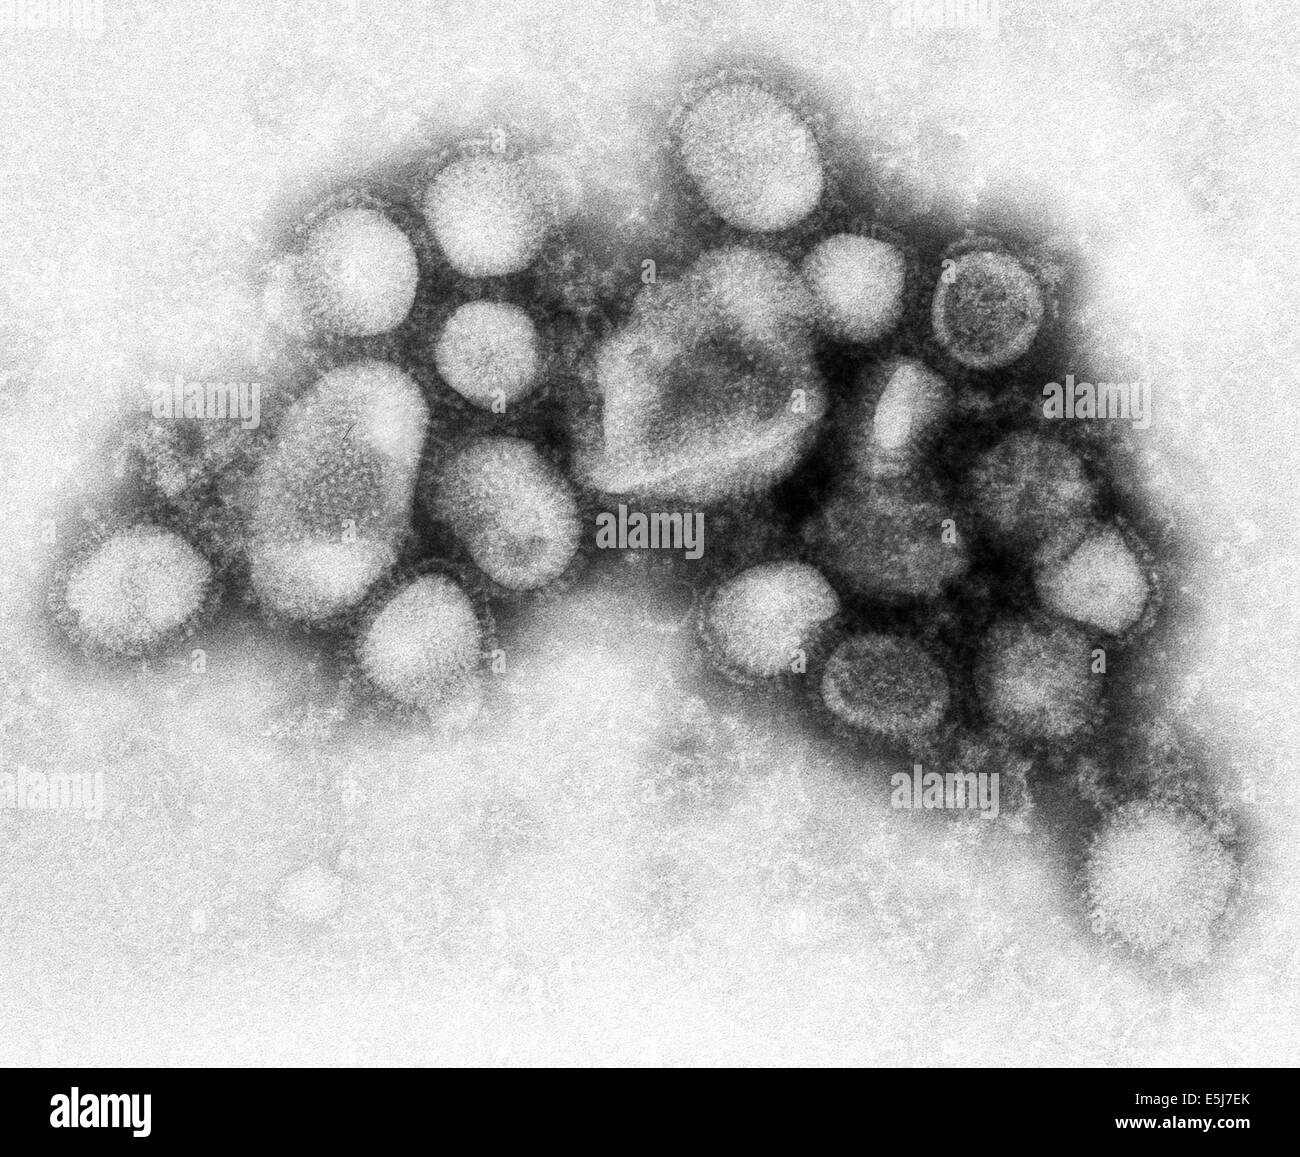 The H1N1 virus that caused a pandemic is now a regular human flu virus and continues to circulate seasonally worldwide. - Stock Image